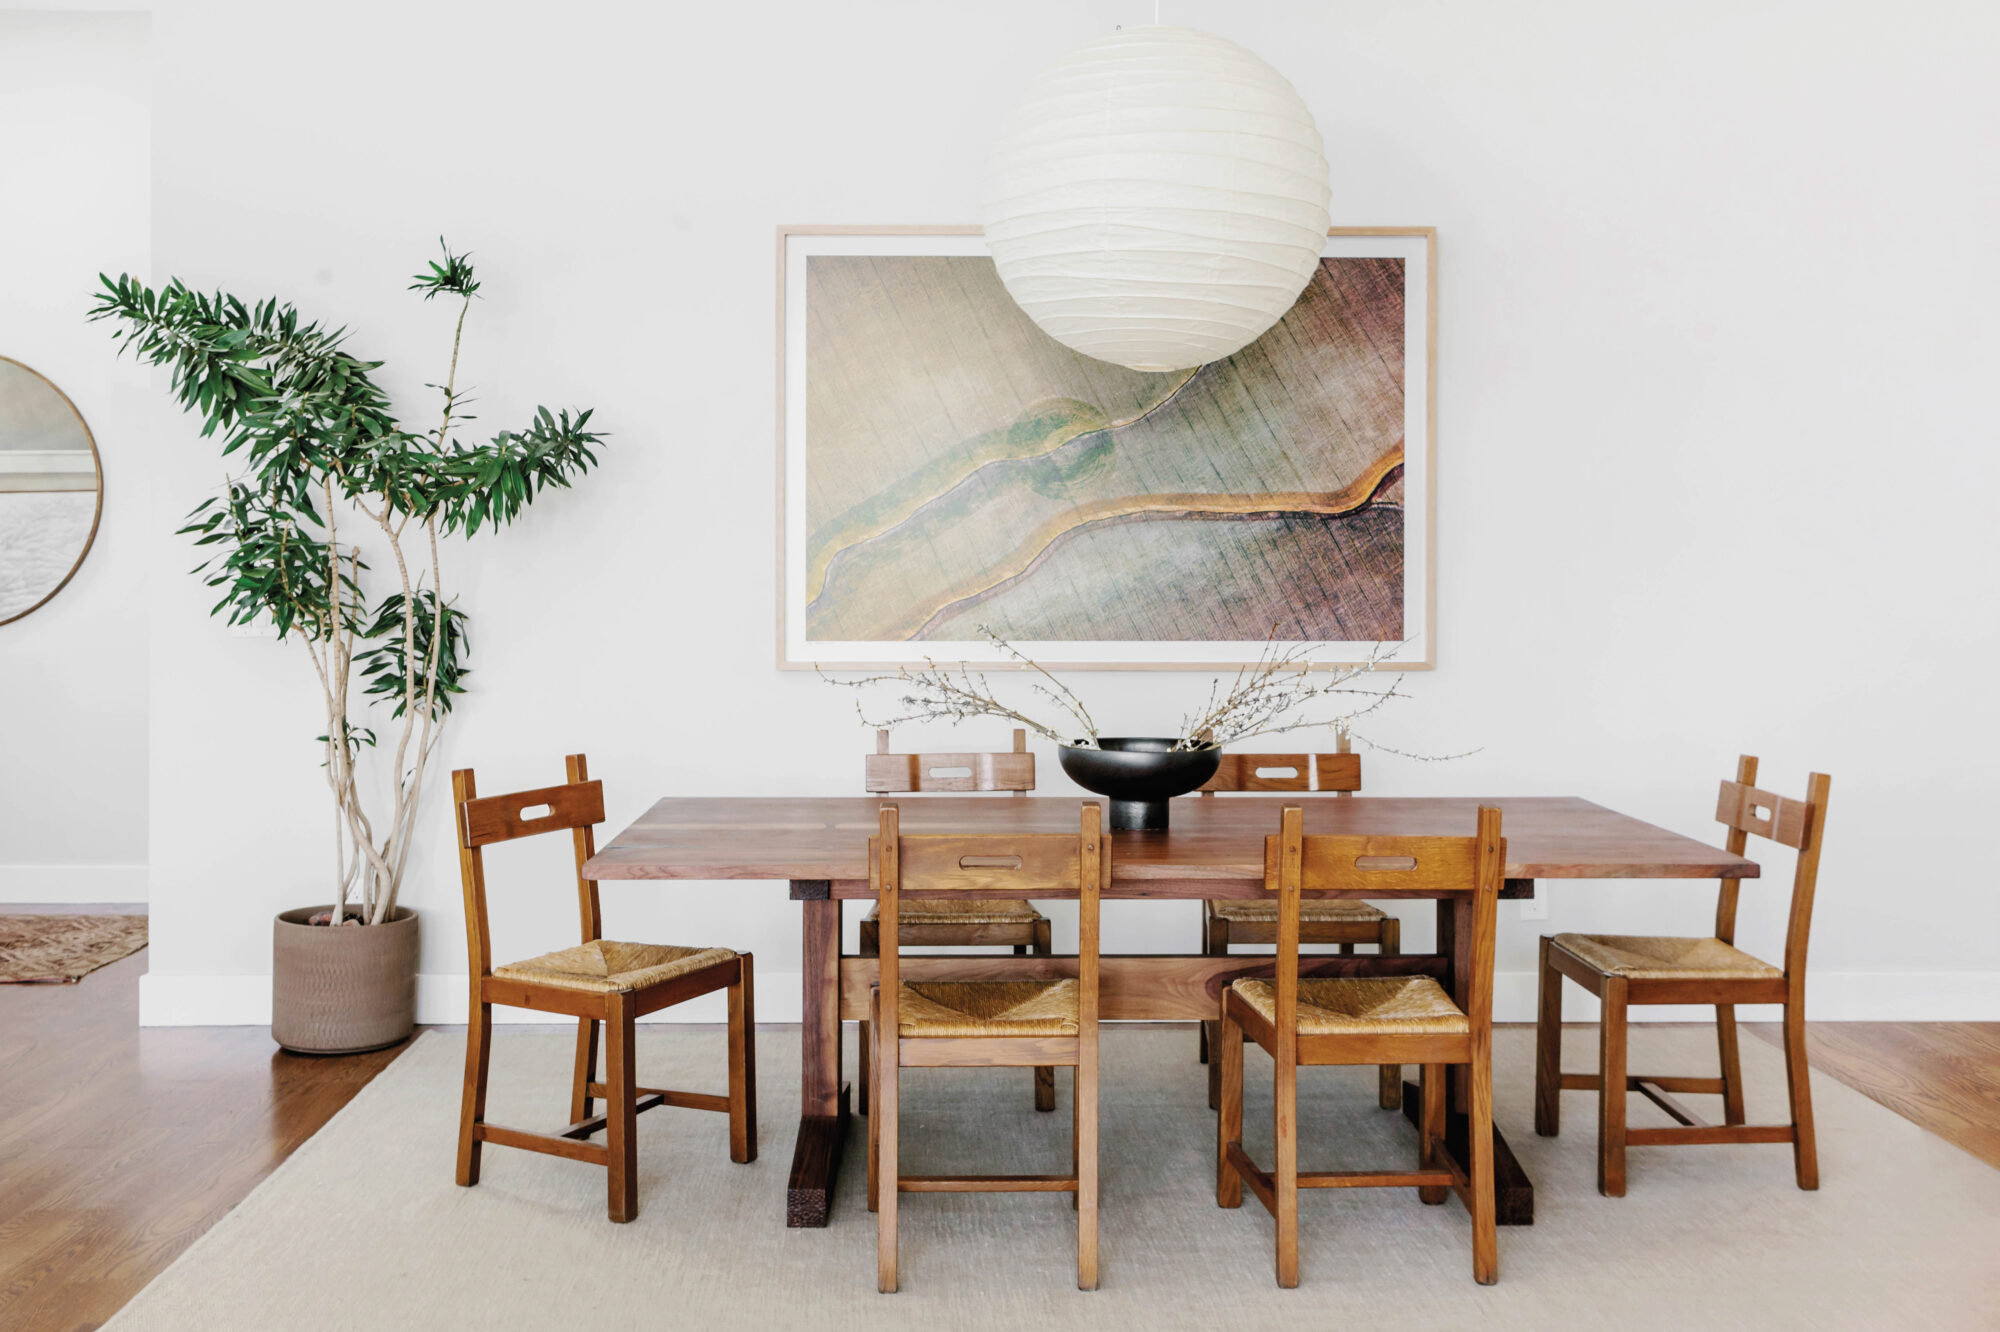 table with artwork and big globe pendant hanging above